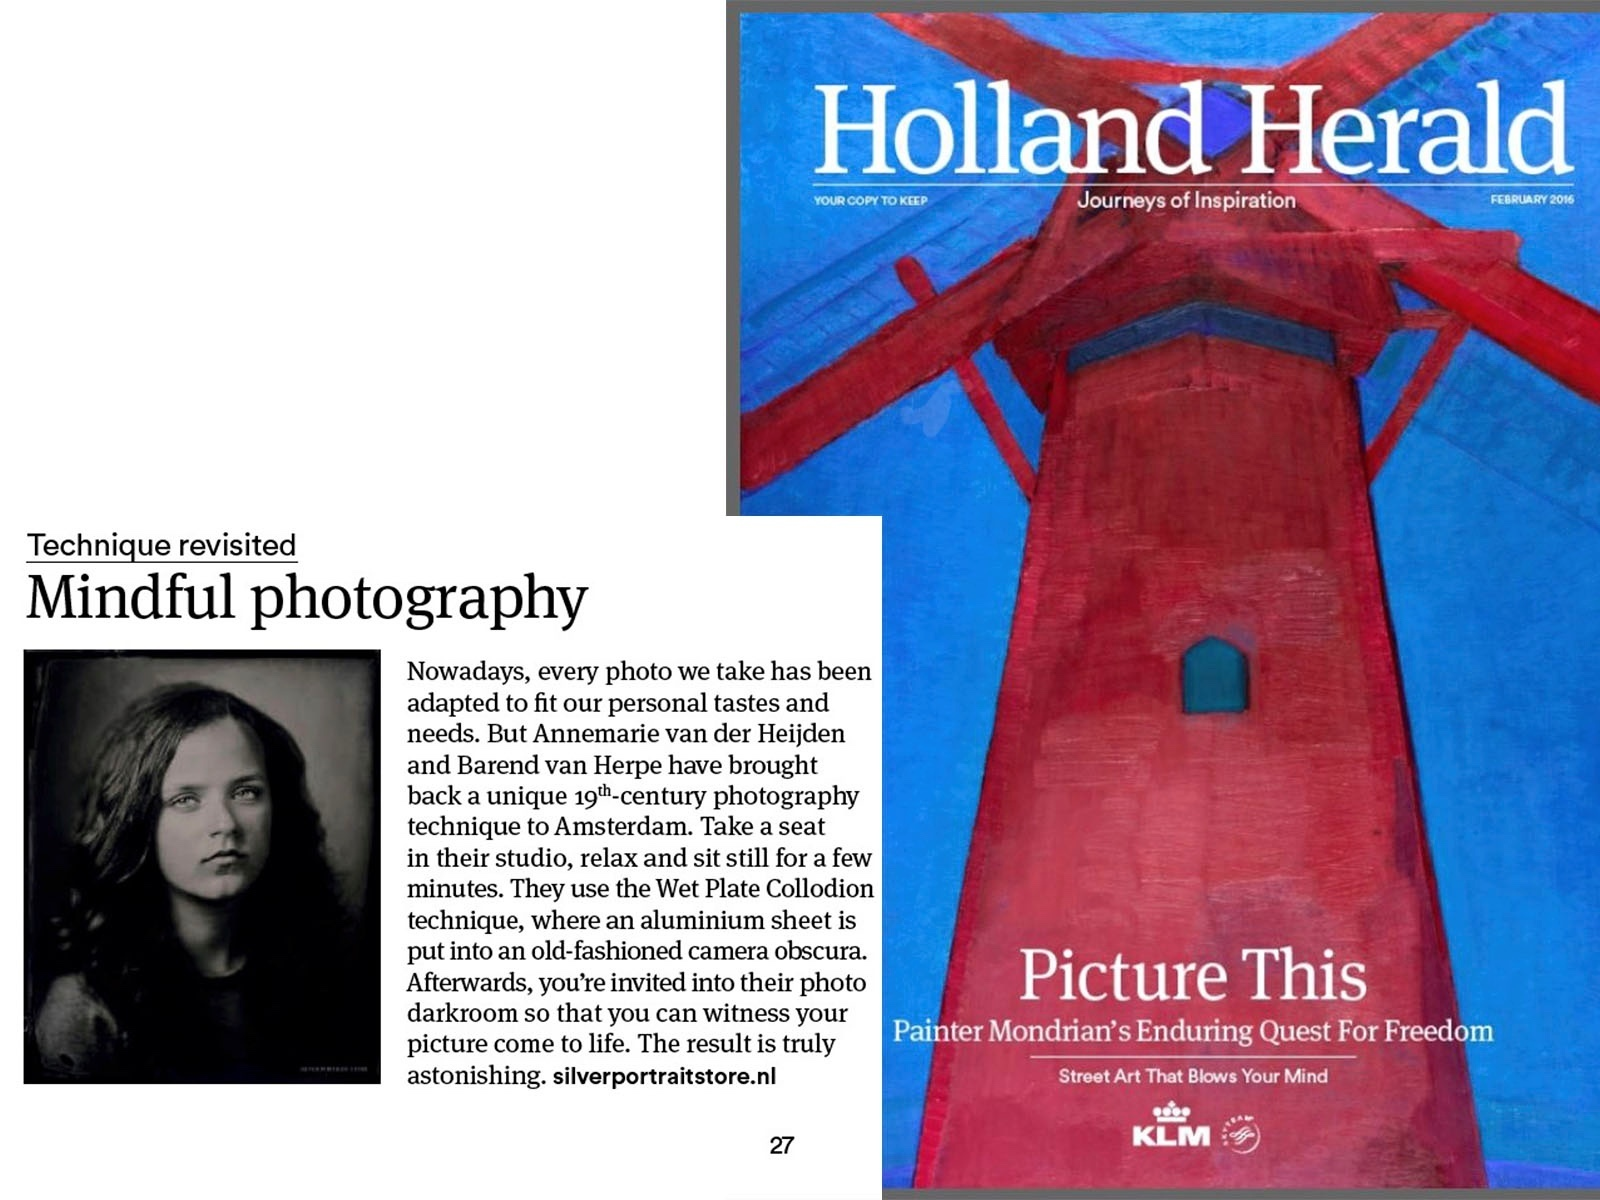 Holland Herald Magazine - Mindful photography.